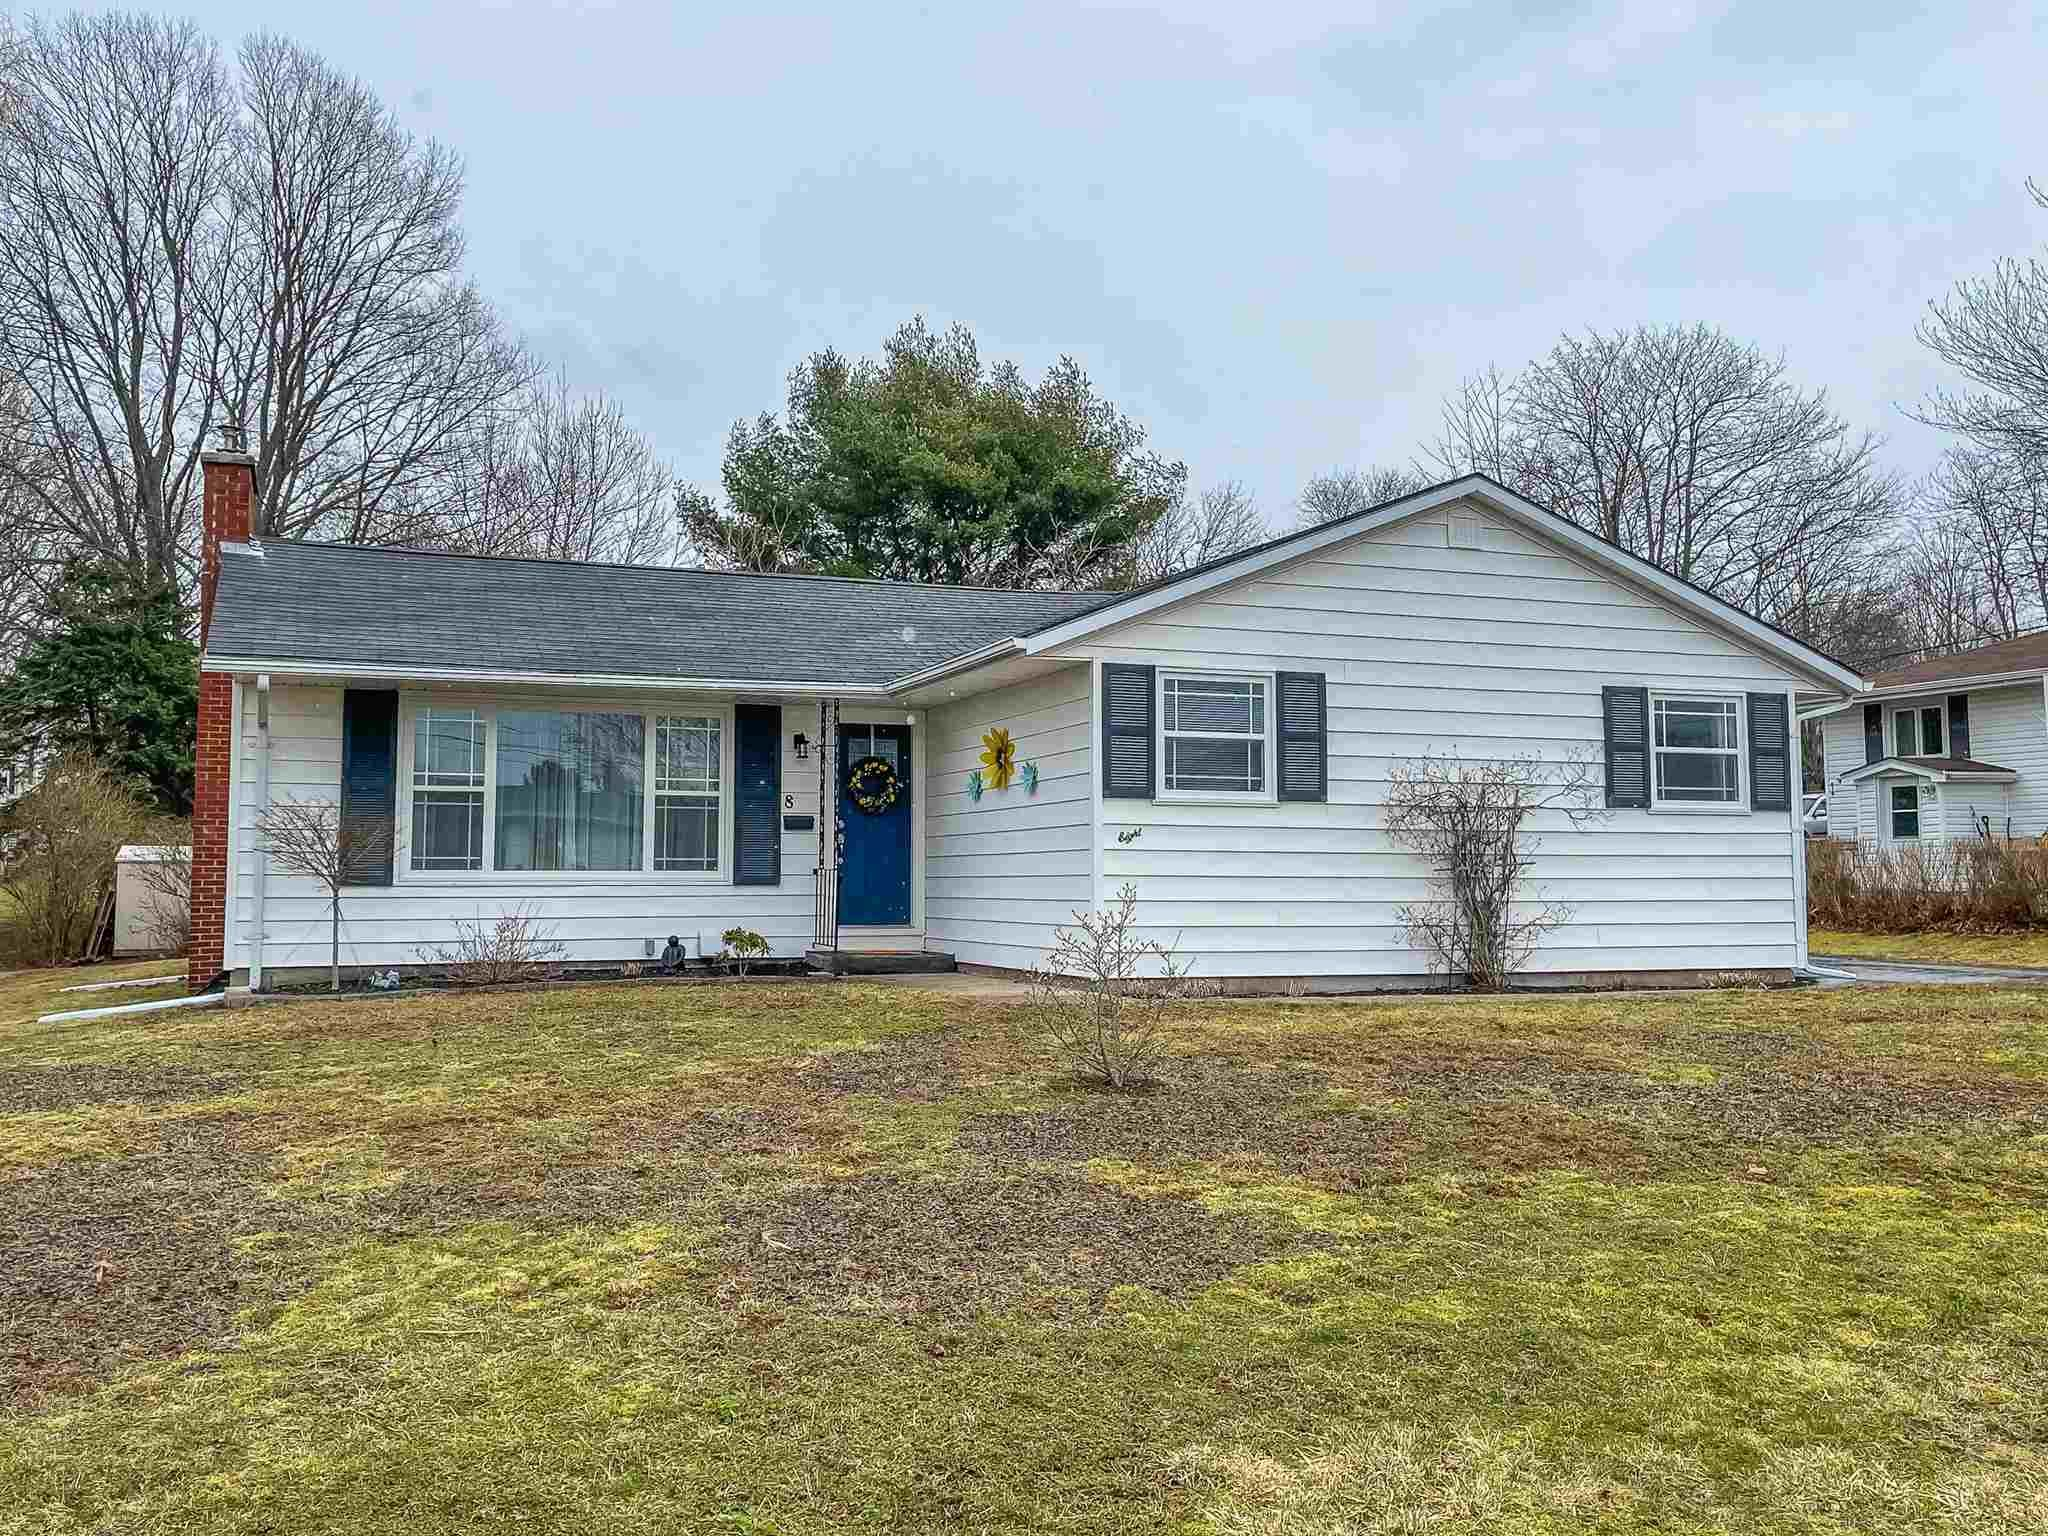 Main Photo: 8 Sherry Avenue in Kentville: 404-Kings County Residential for sale (Annapolis Valley)  : MLS®# 202106960